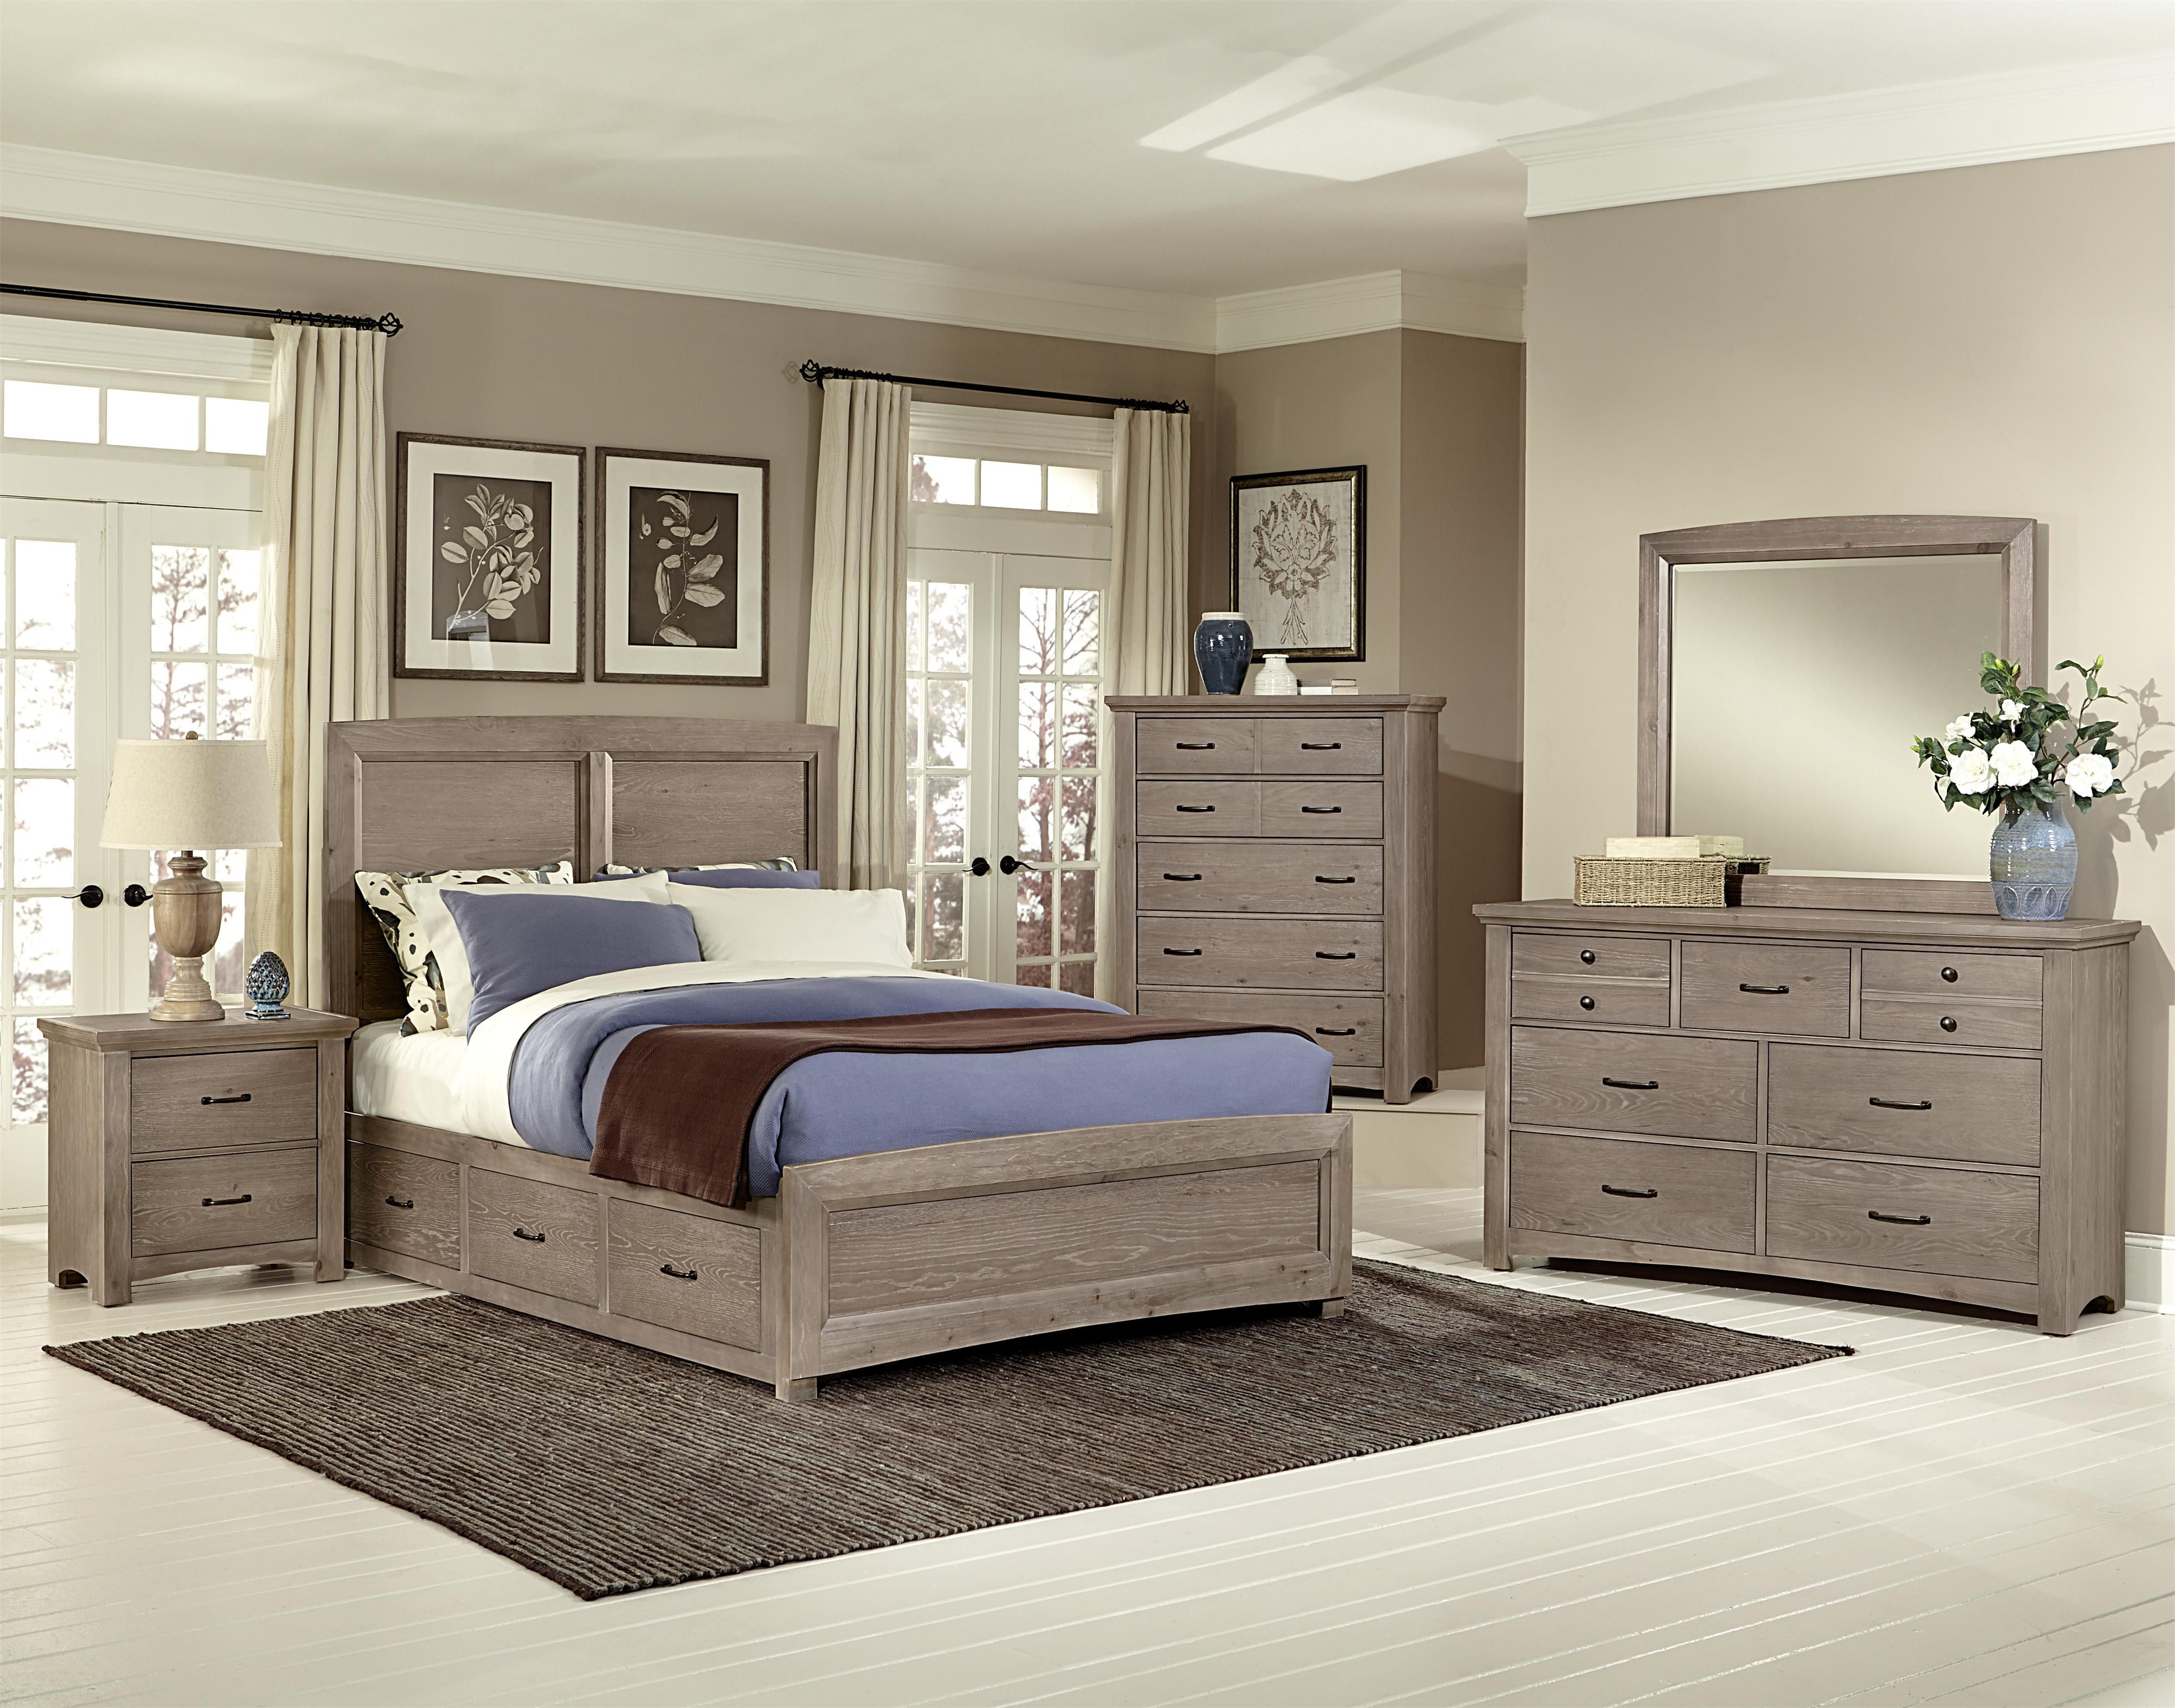 Transitions Queen Bedroom Group by Vaughan Bassett House